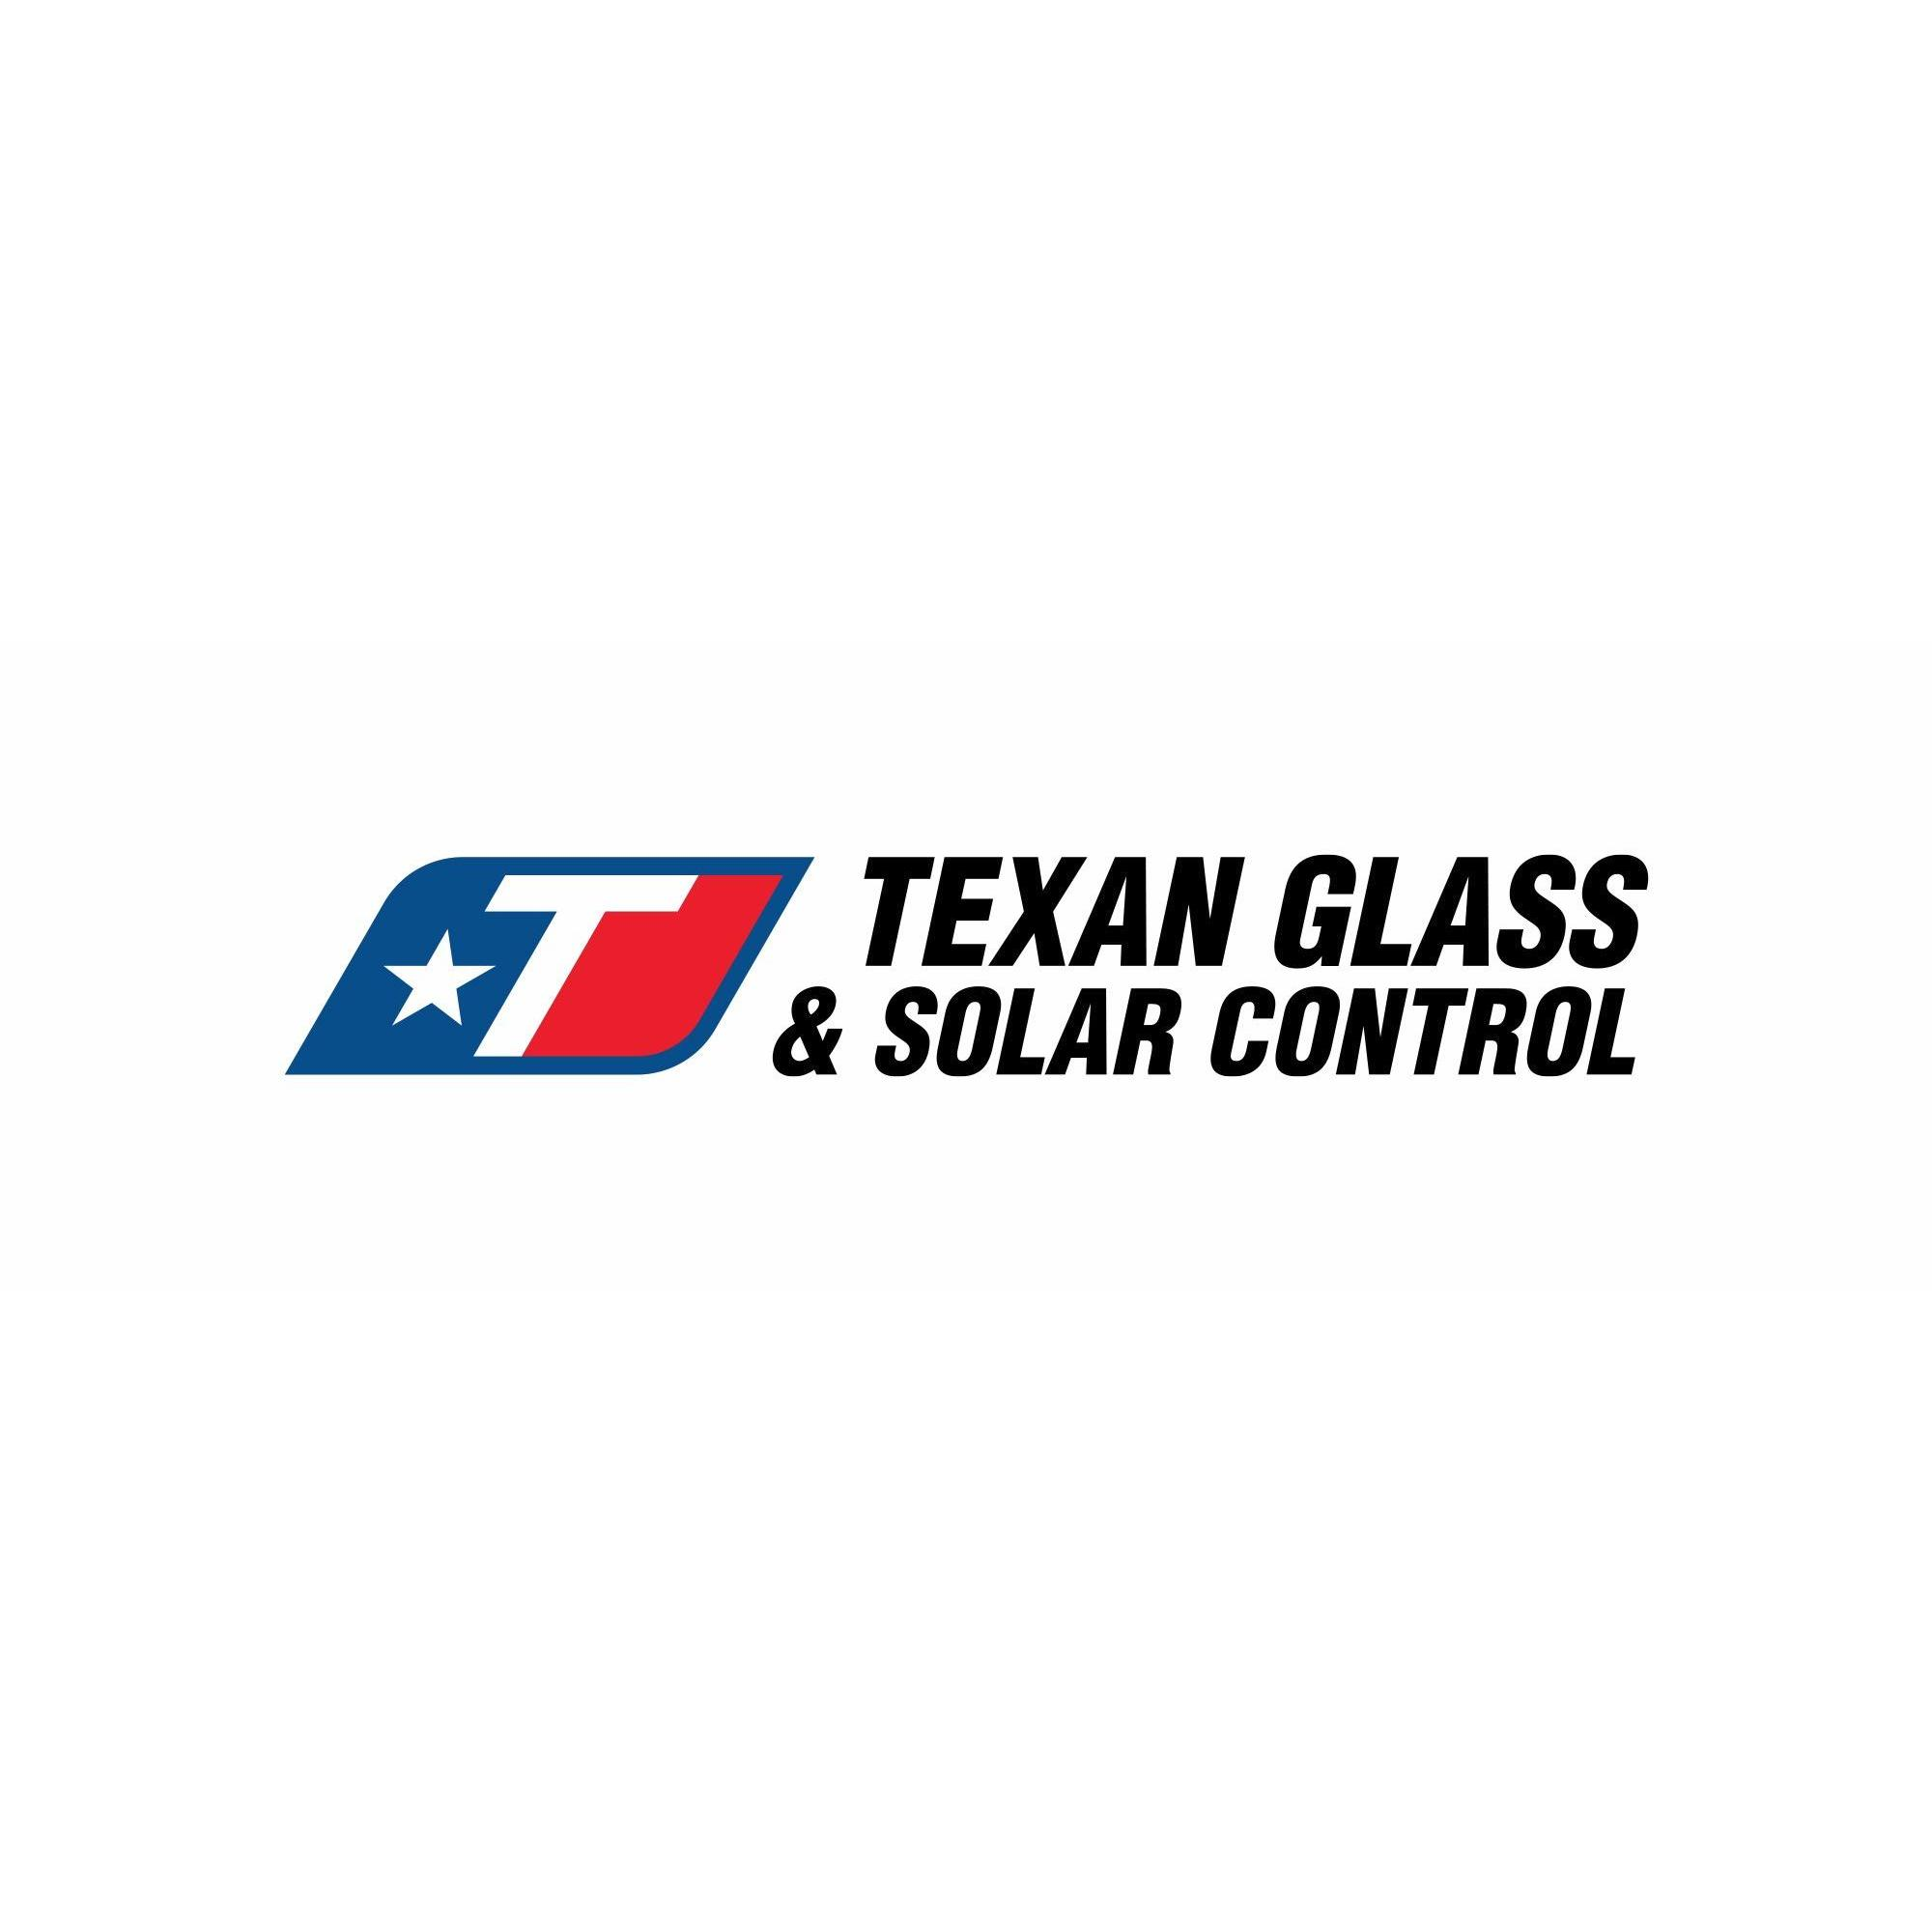 Texan Glass & Solar Control - San Antonio, TX 78217 - (210)310-7500 | ShowMeLocal.com